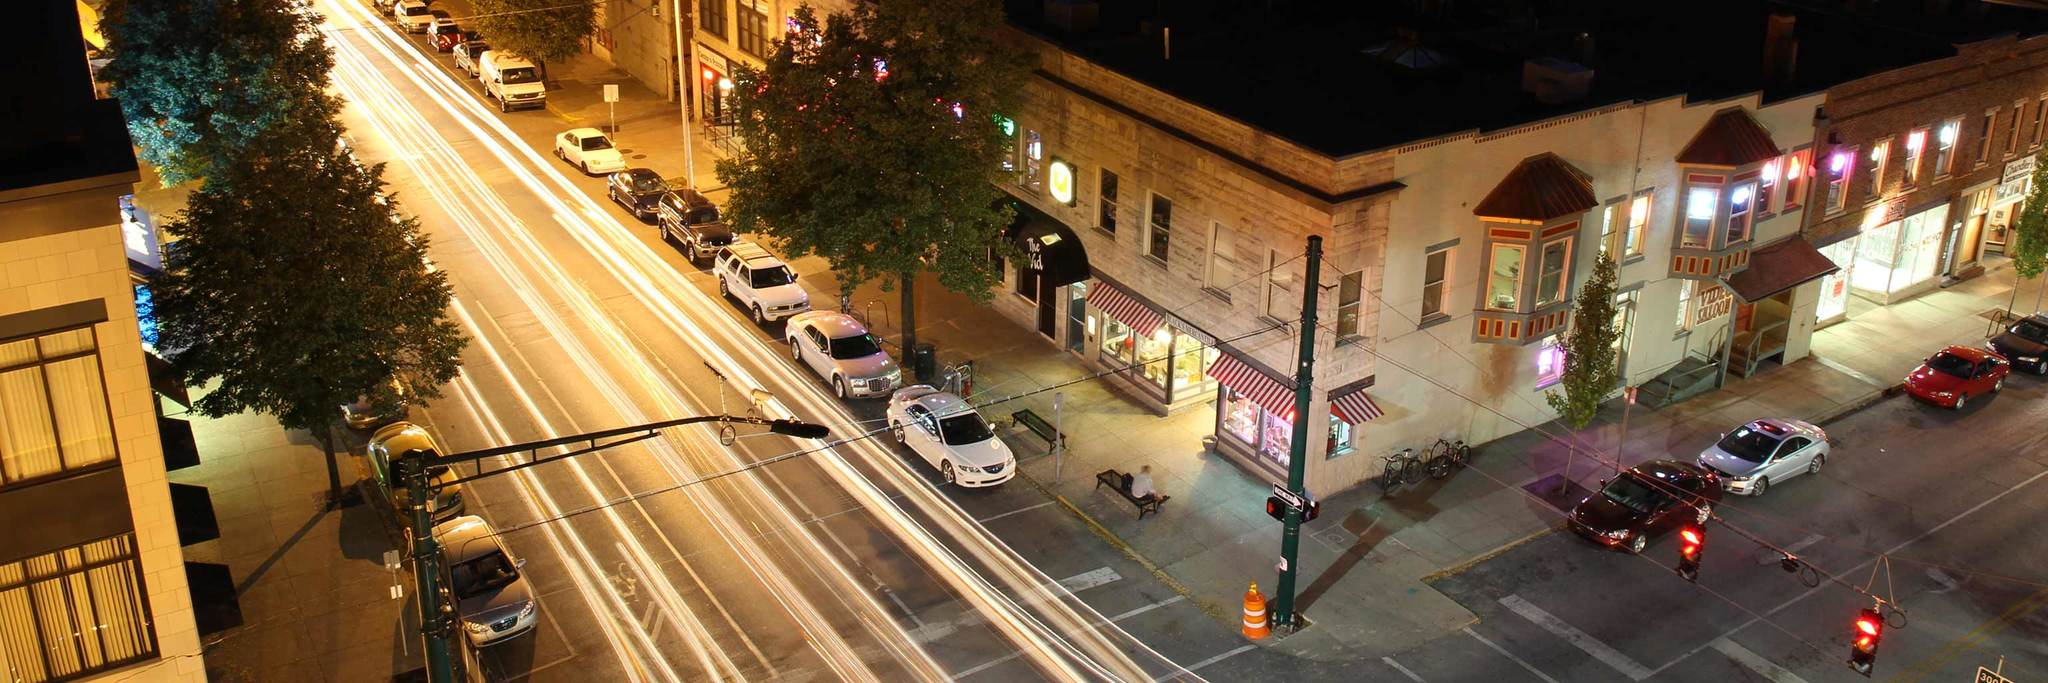 Downtown Bloomington street at night